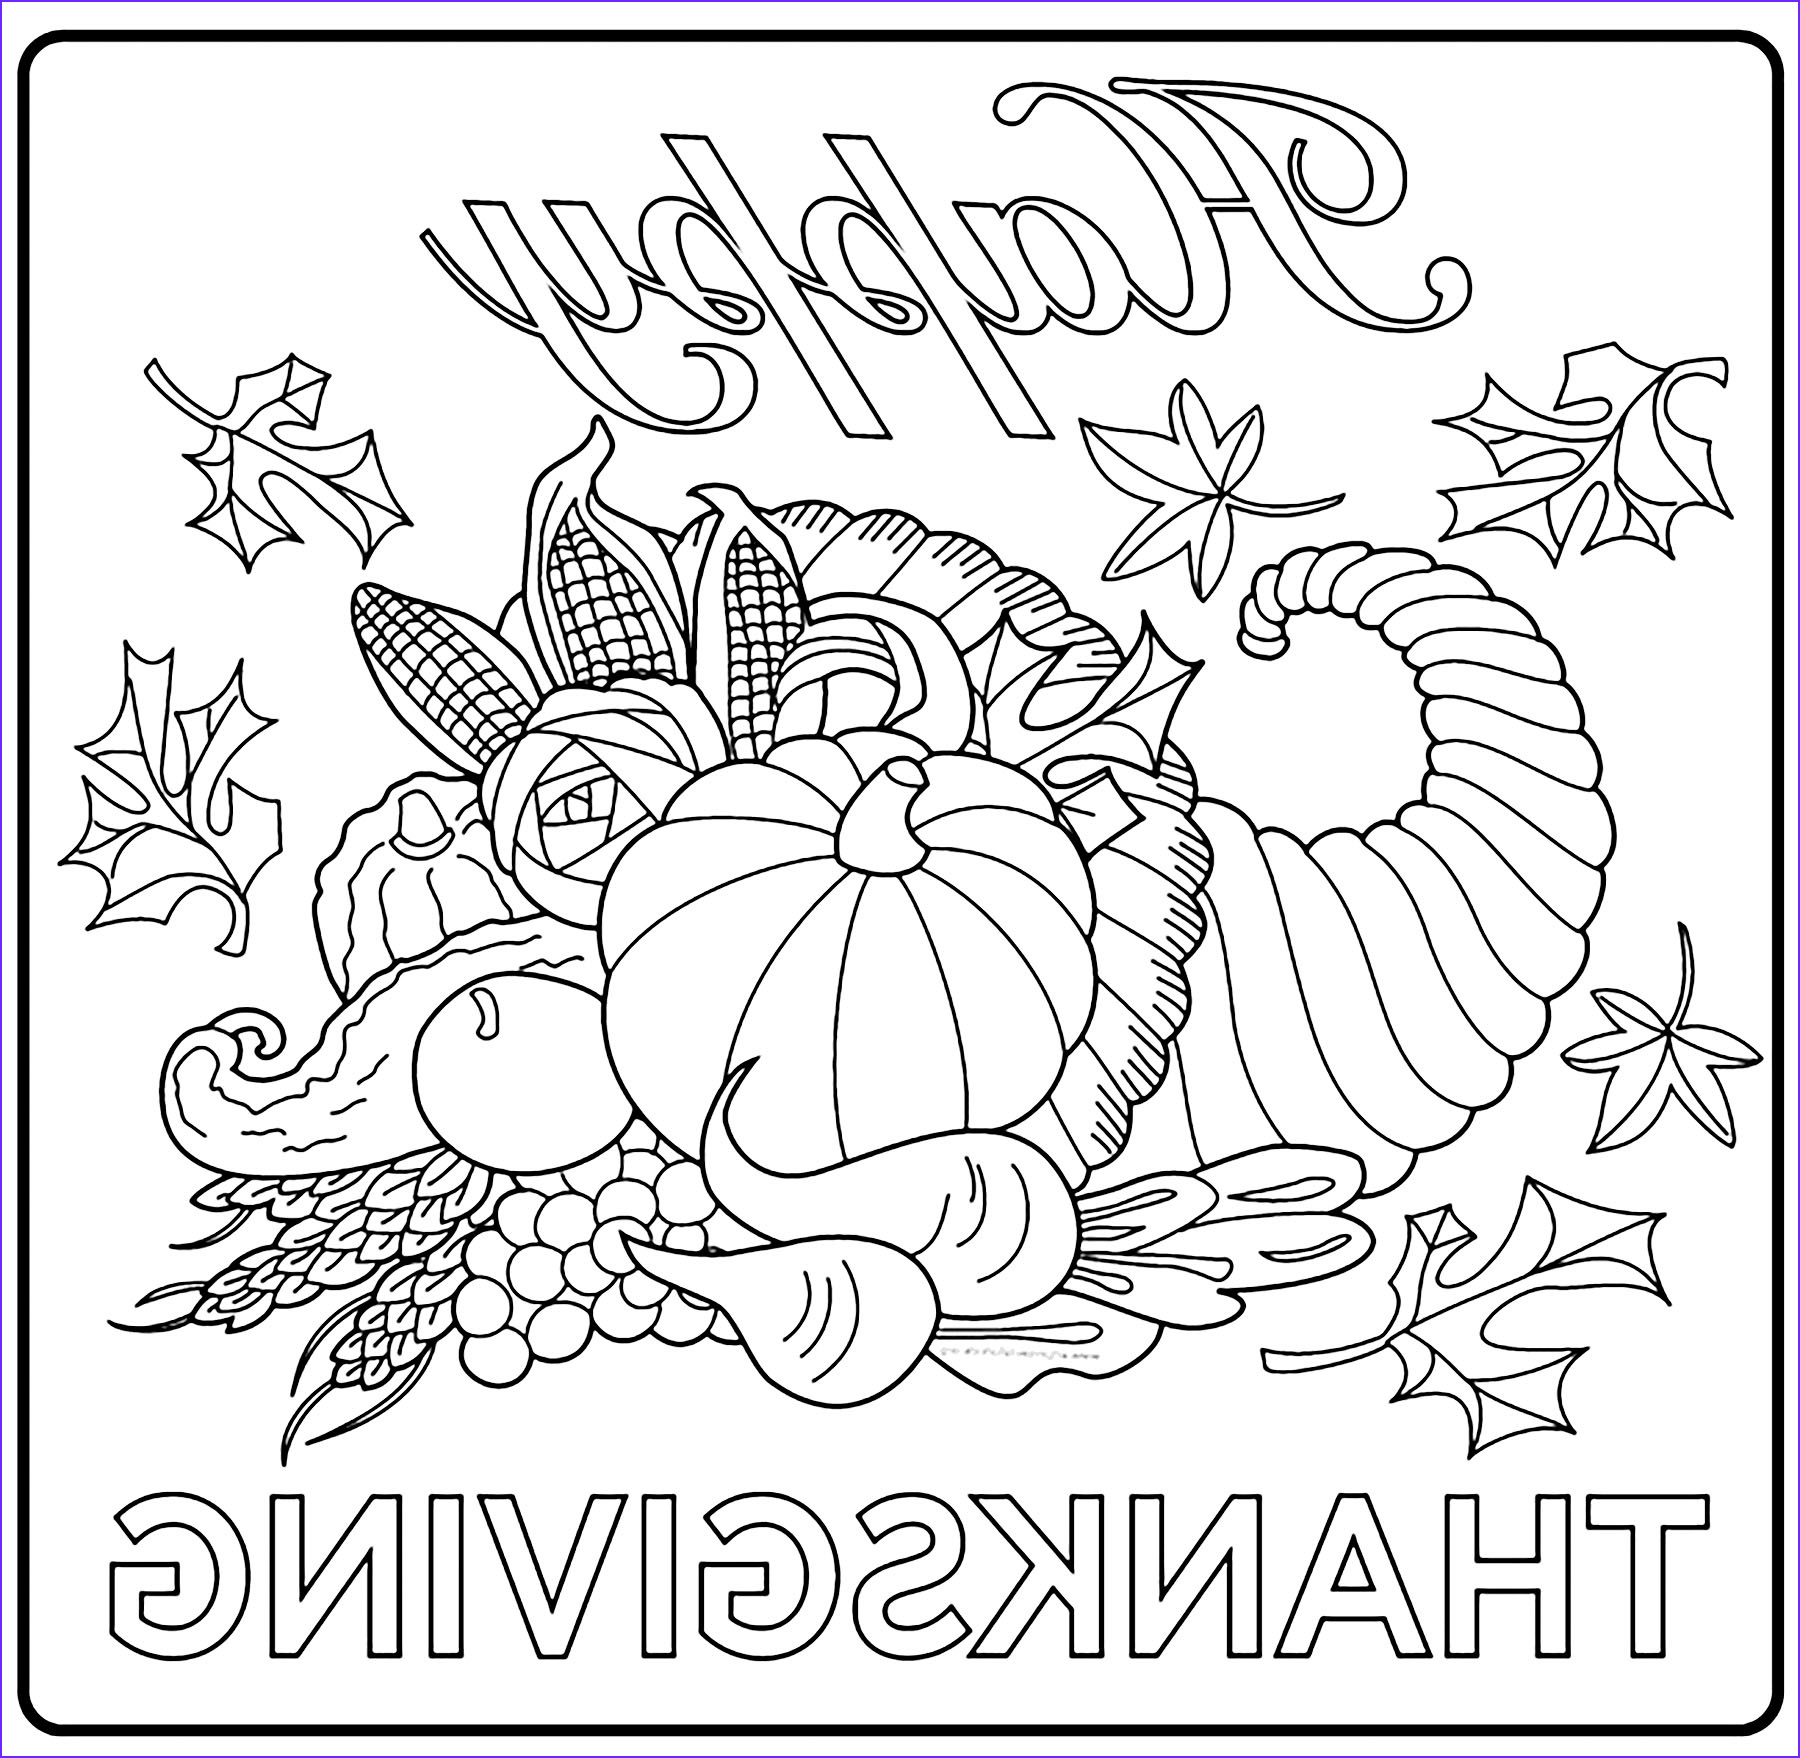 Thanksgiving Coloring Sheet for Kids Beautiful Photos Thanksgiving Free to Color for Children Thanksgiving